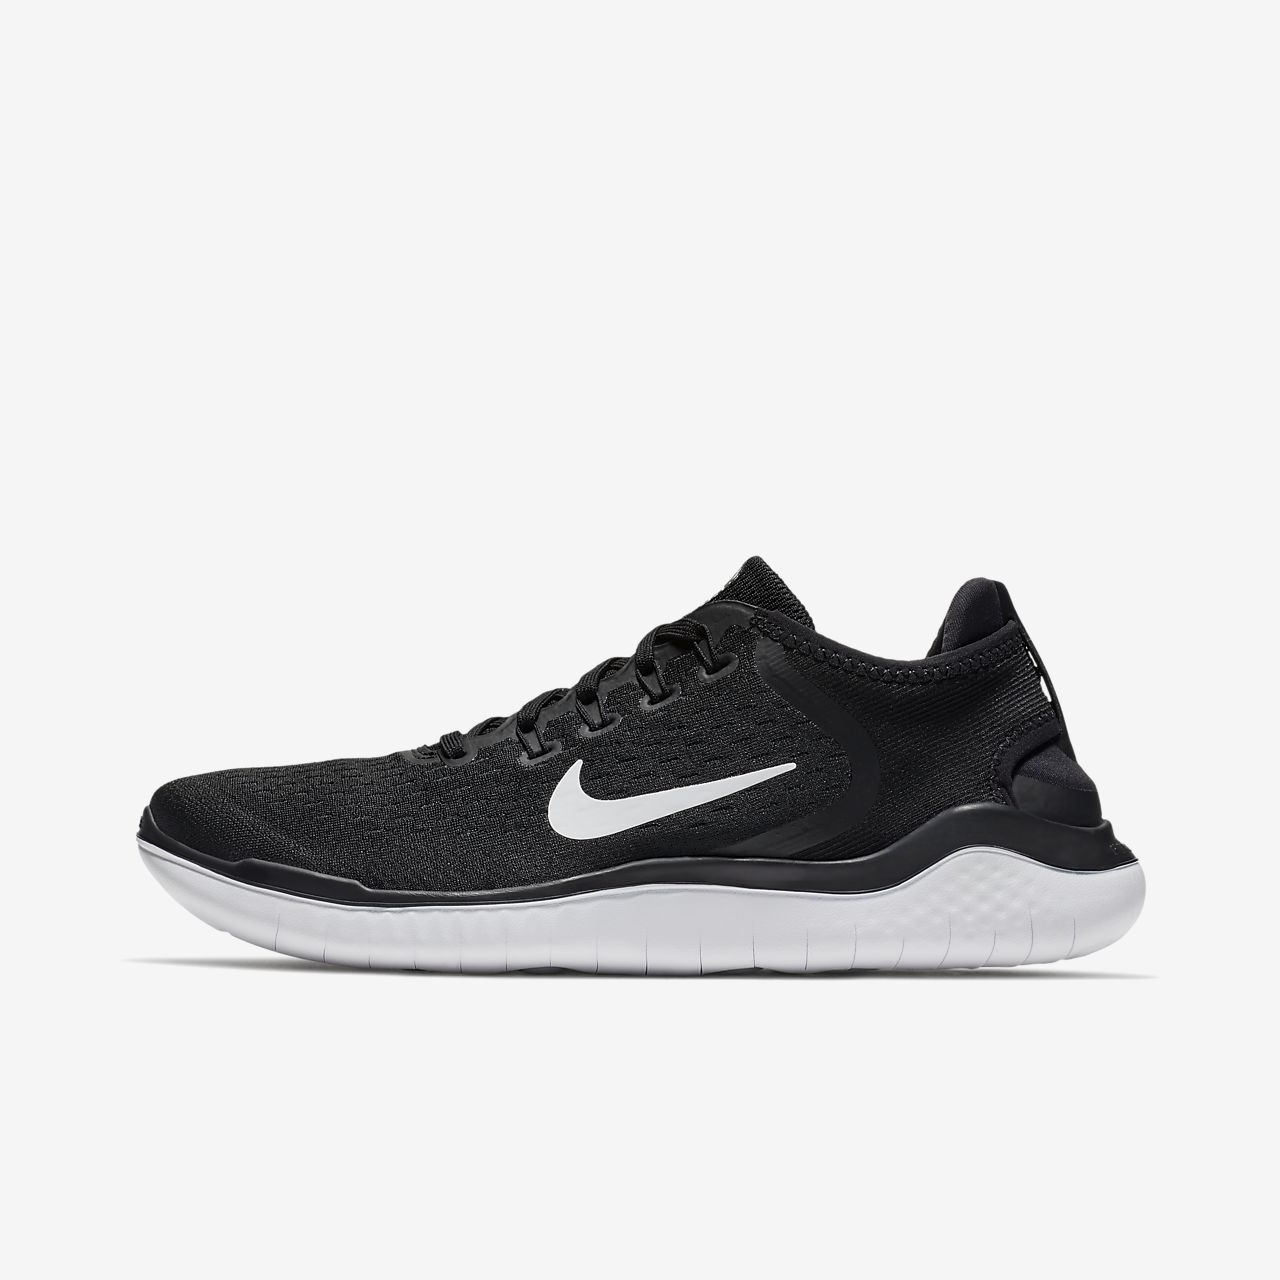 info for d7a4e 1c678 Men s Running Shoe. Nike Free RN 2018